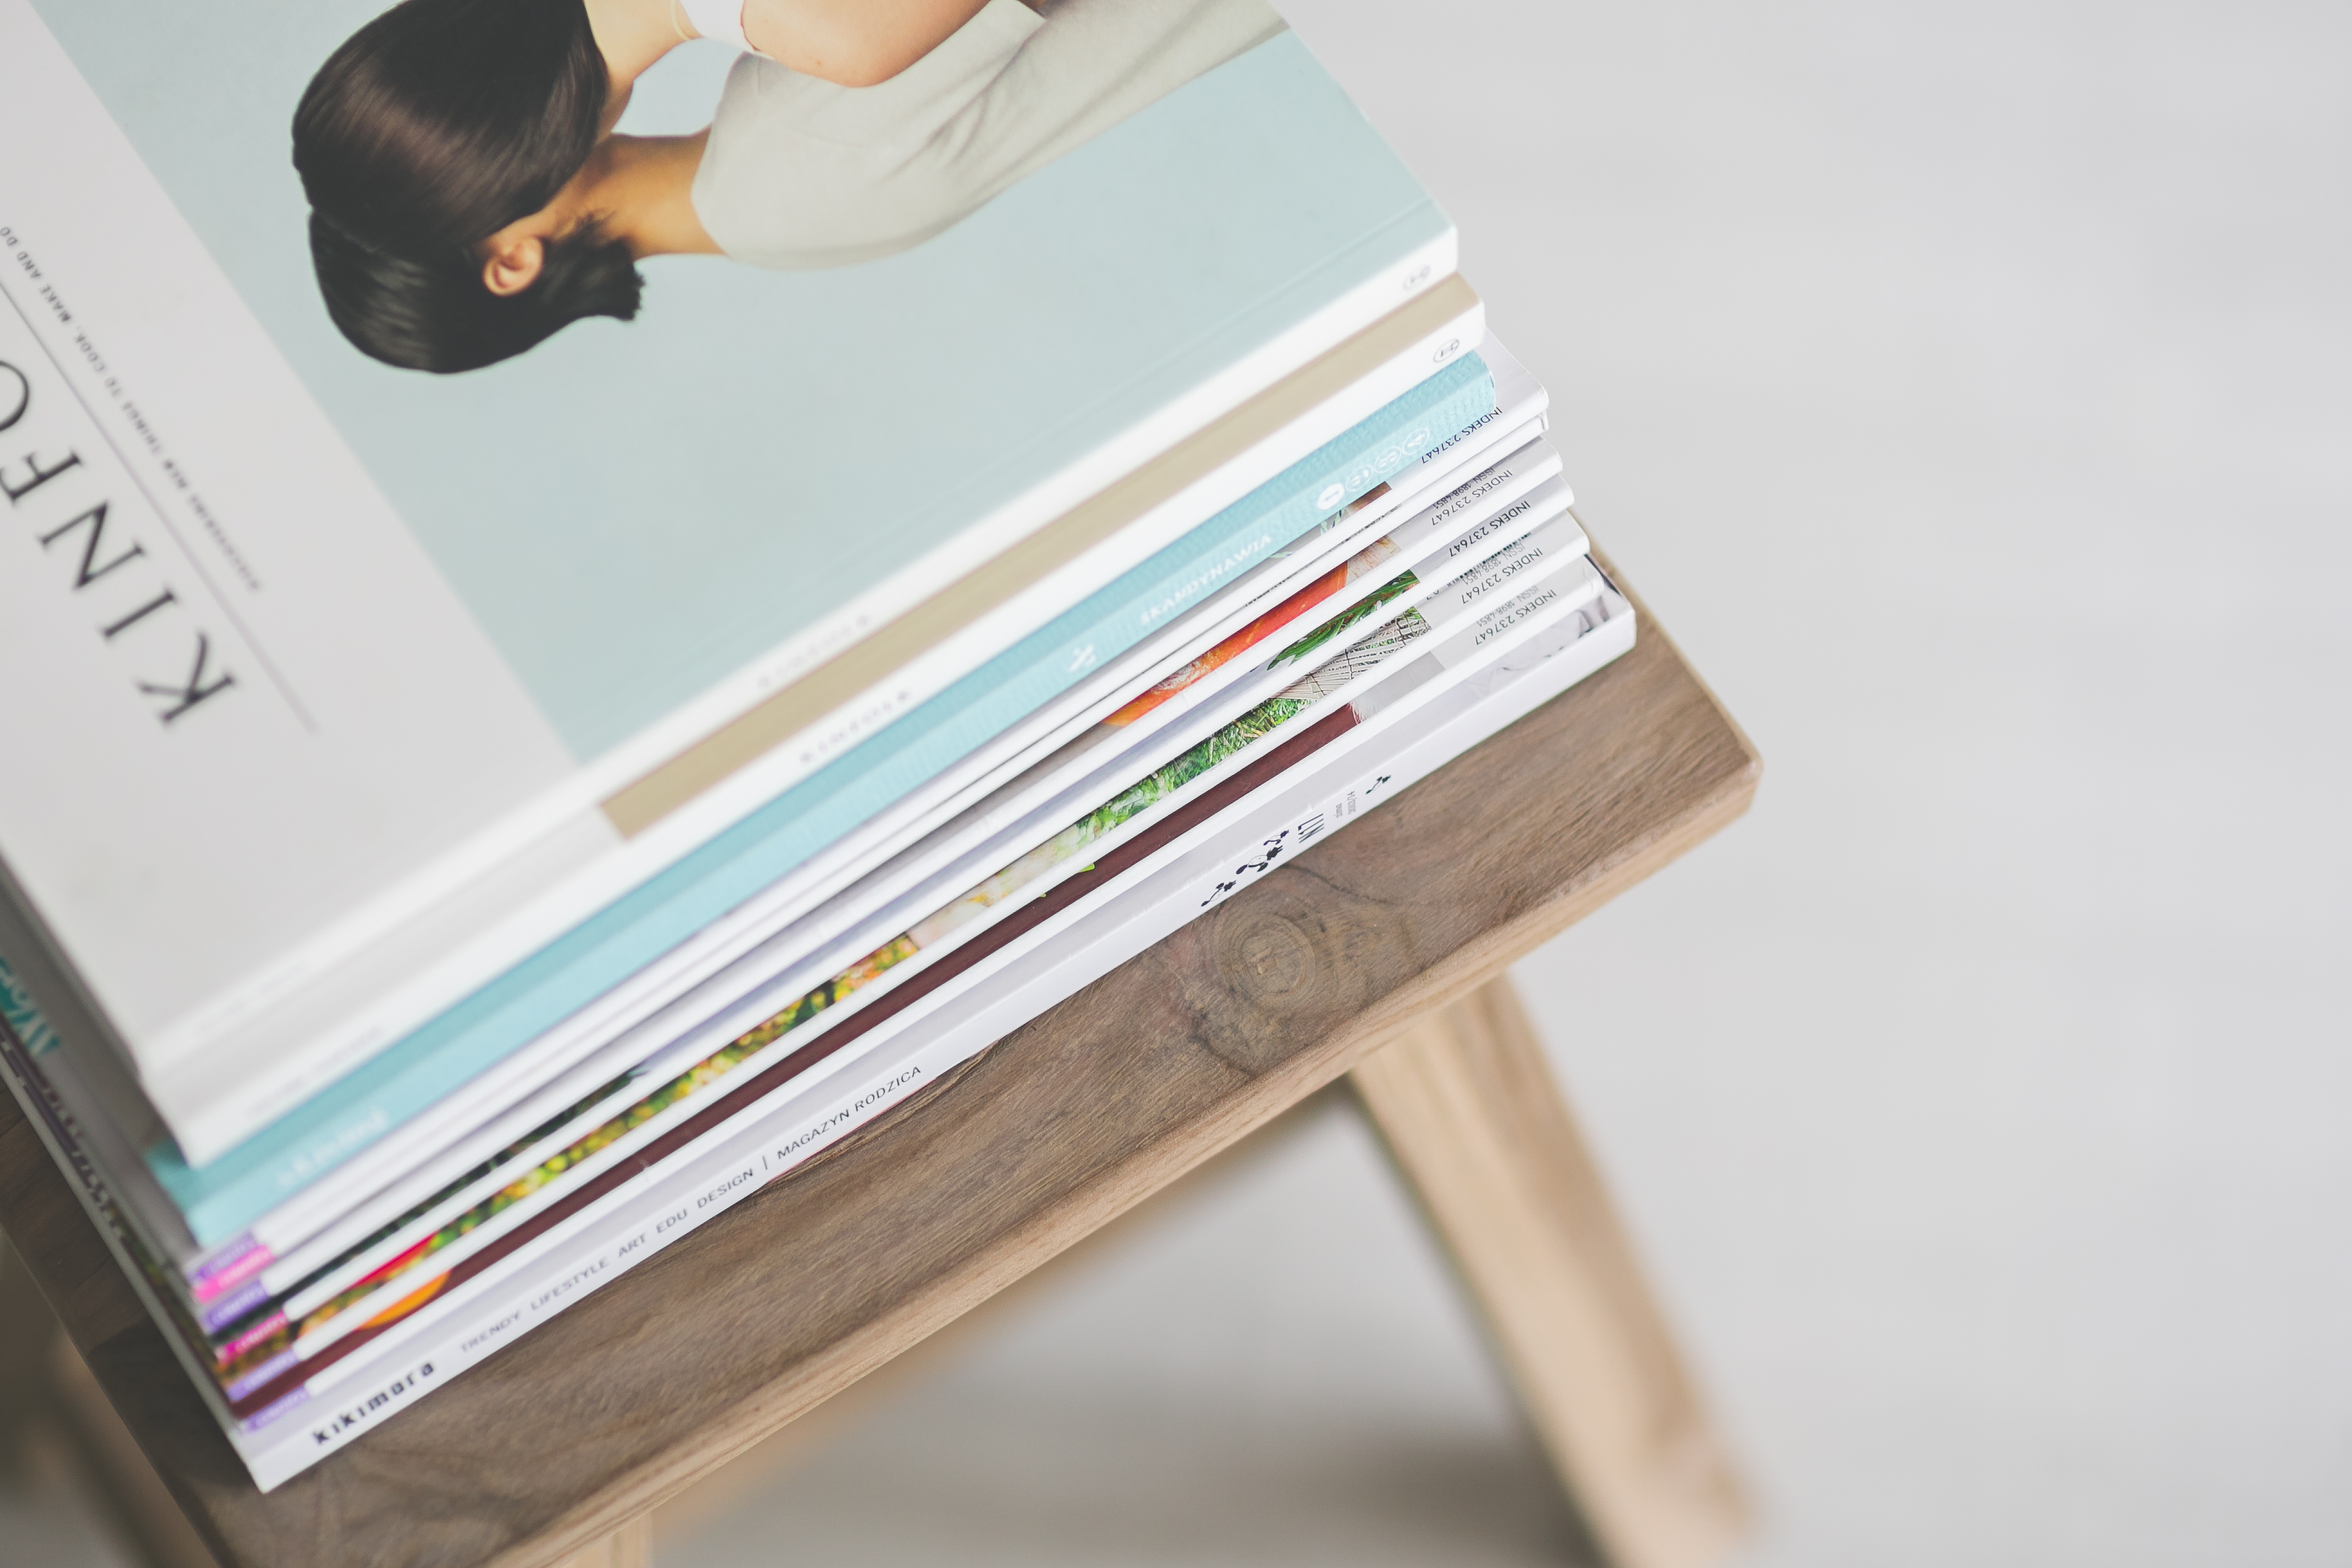 magazines-stack-reading-magazine